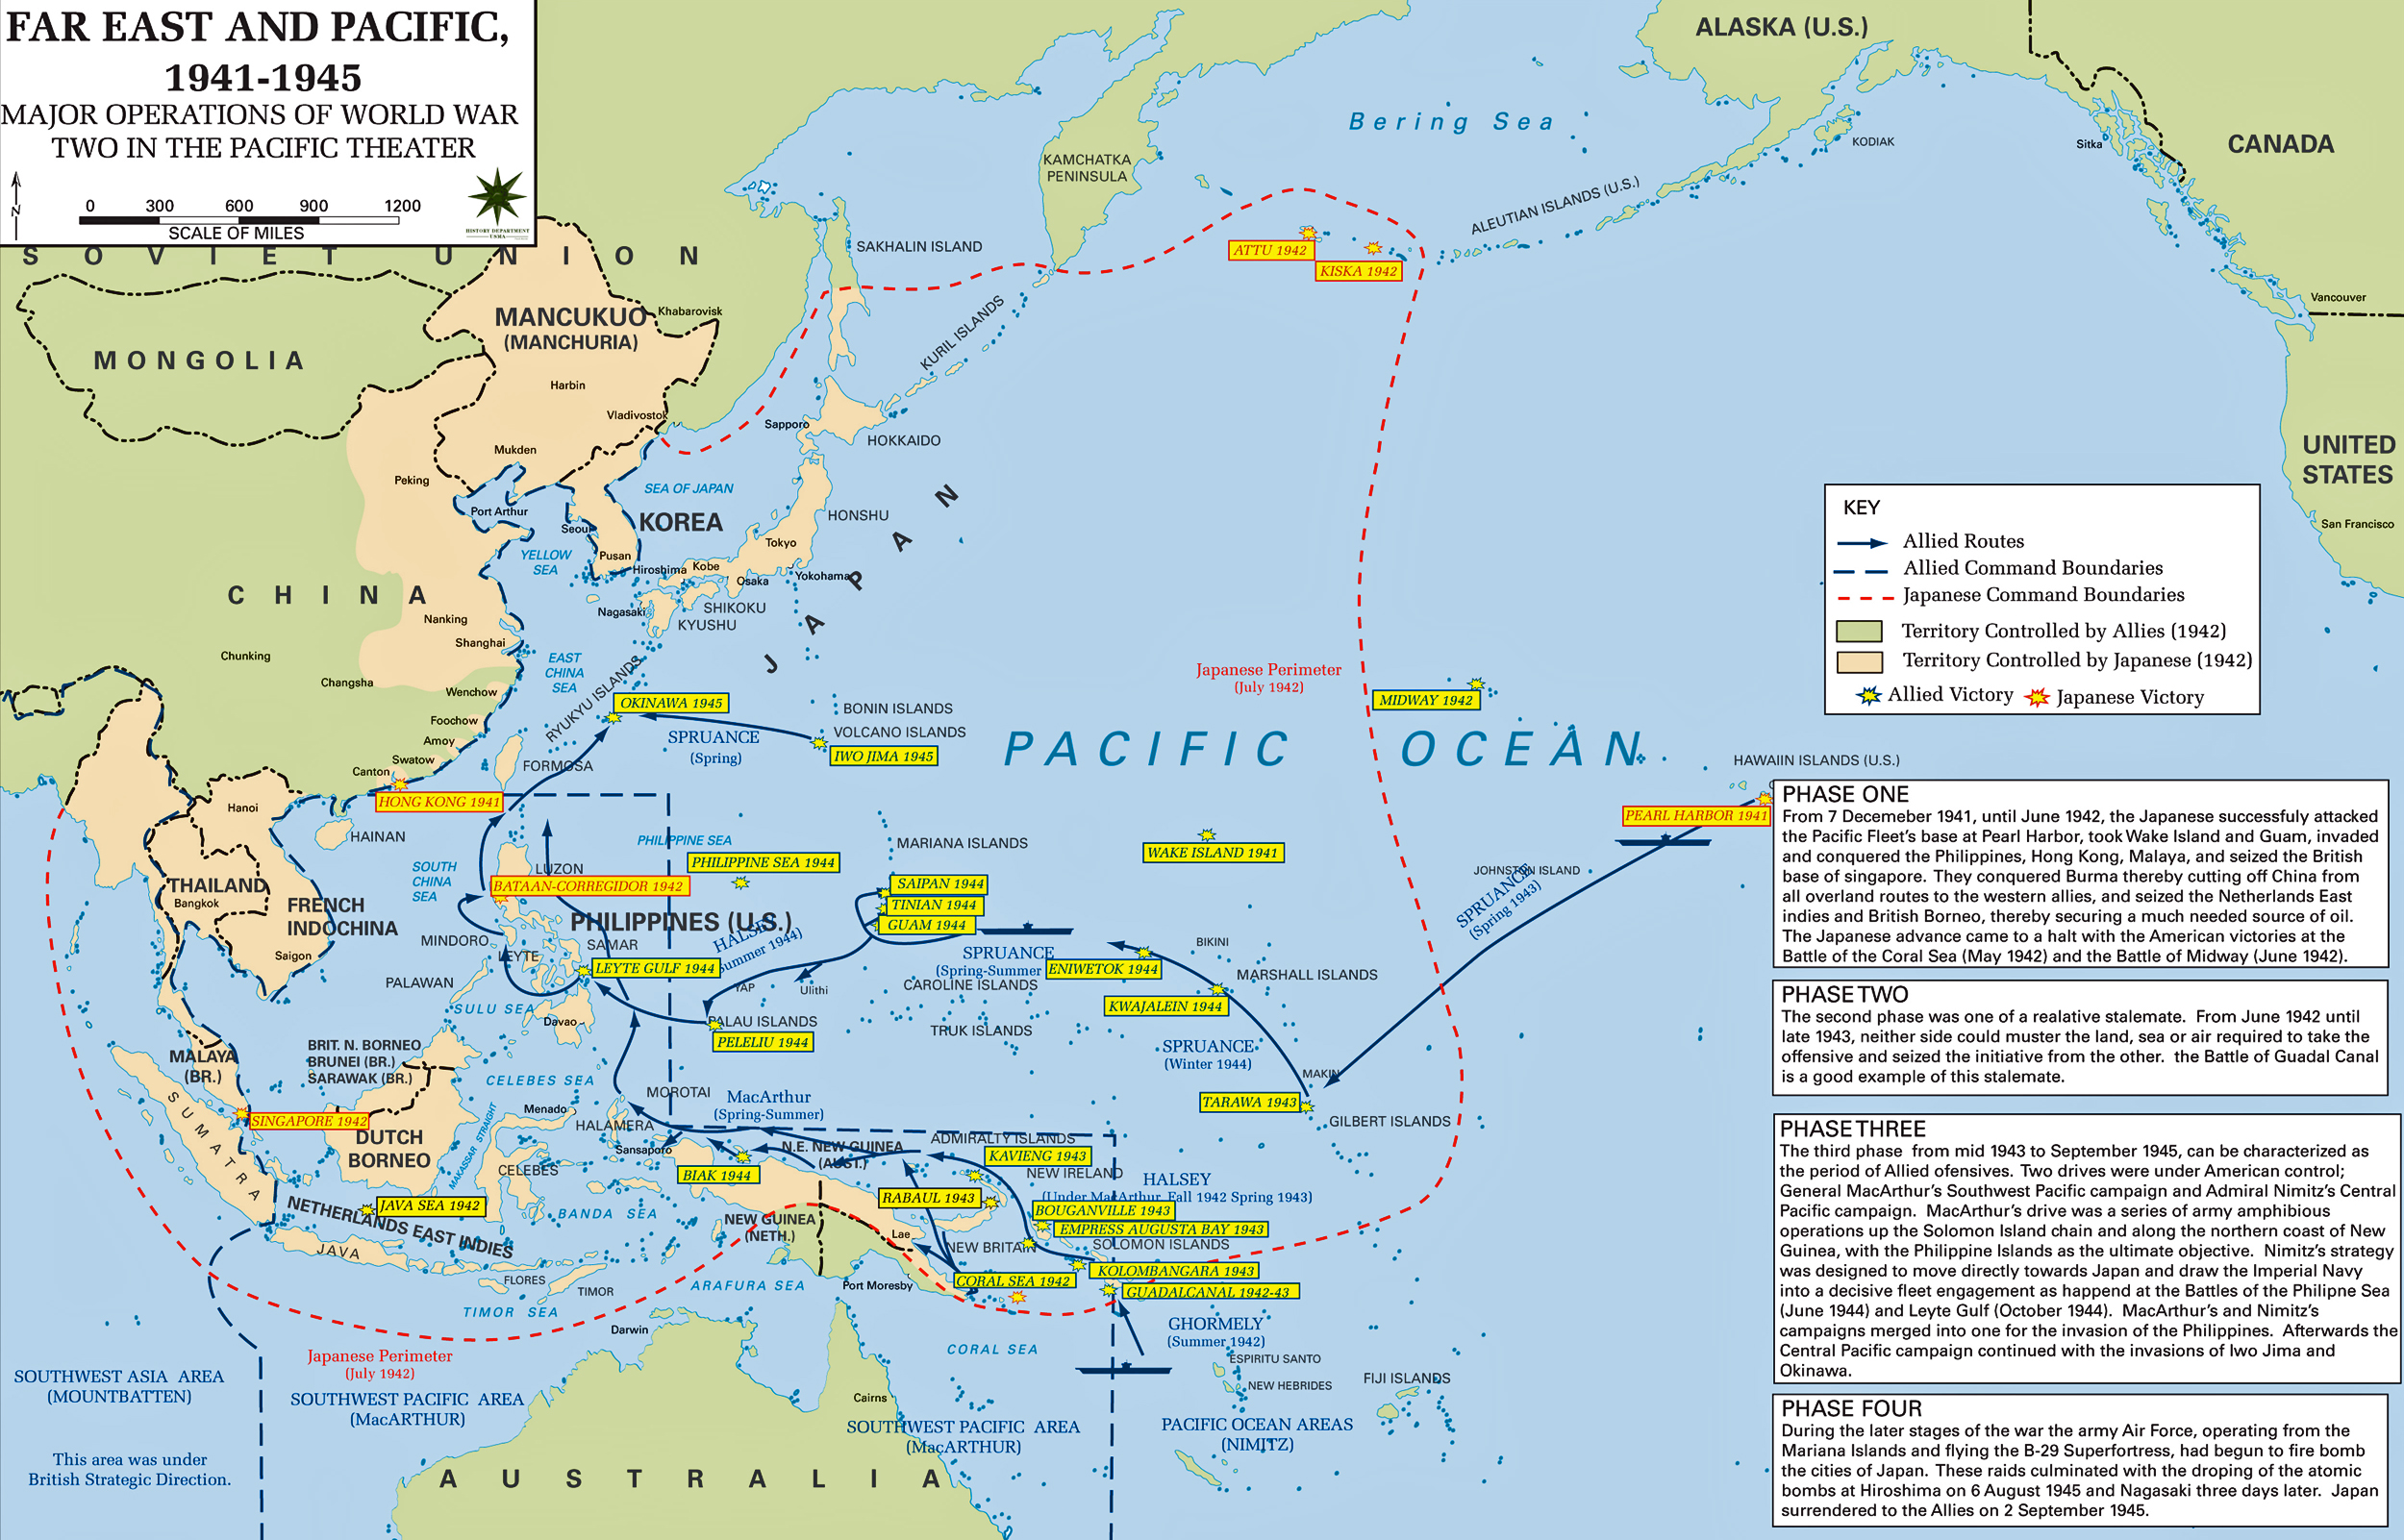 Map Of Asia Pre Ww2.Map Of Wwii Major Operations In Asia And The Pacific